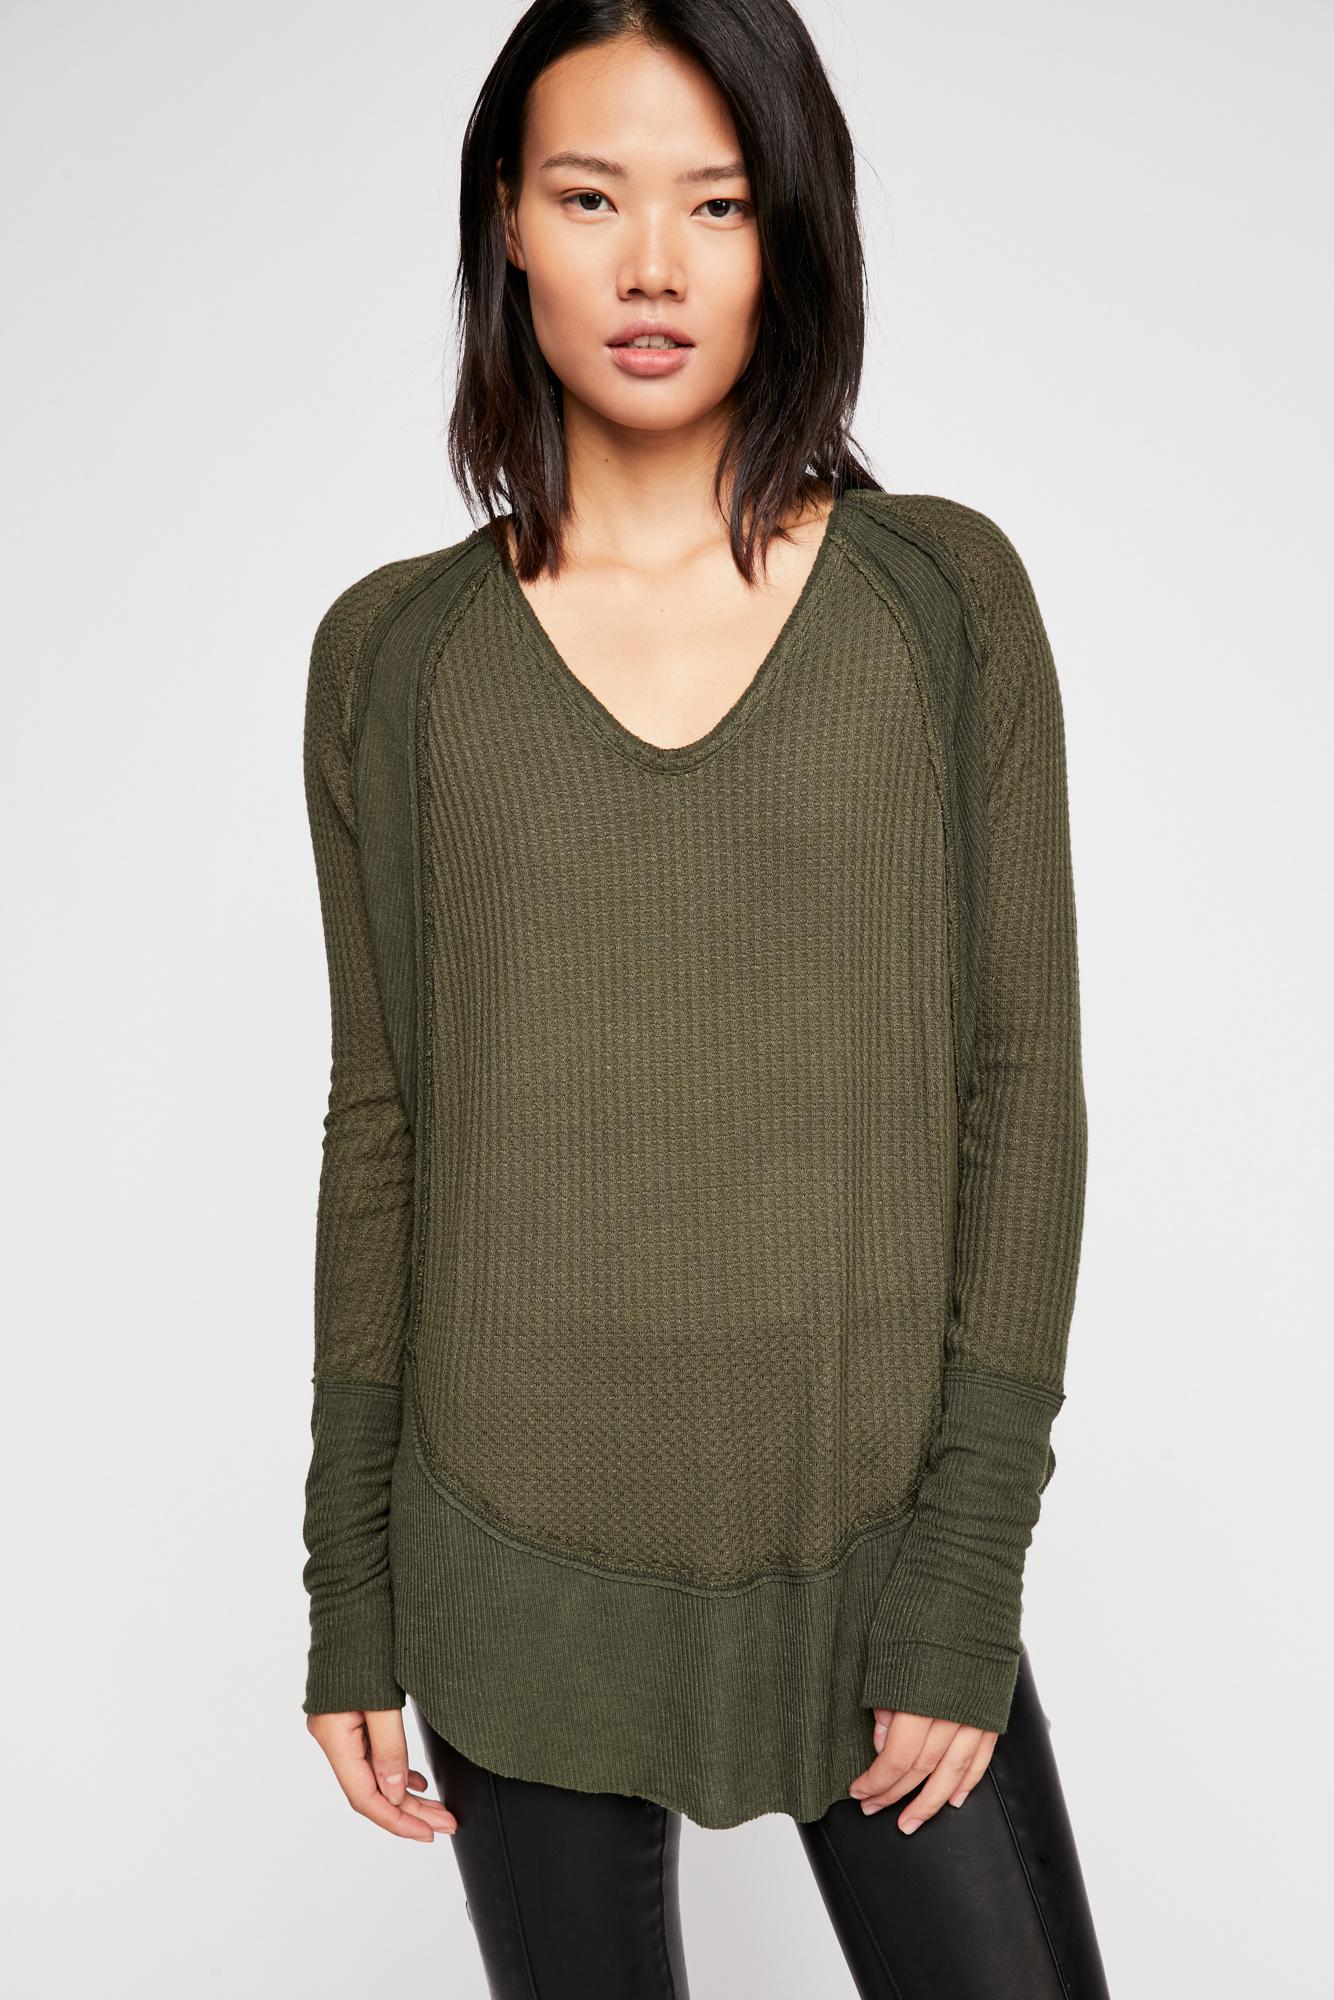 1f644ced75 Free People We The Free Catalina Thermal Top in Green - Lyst